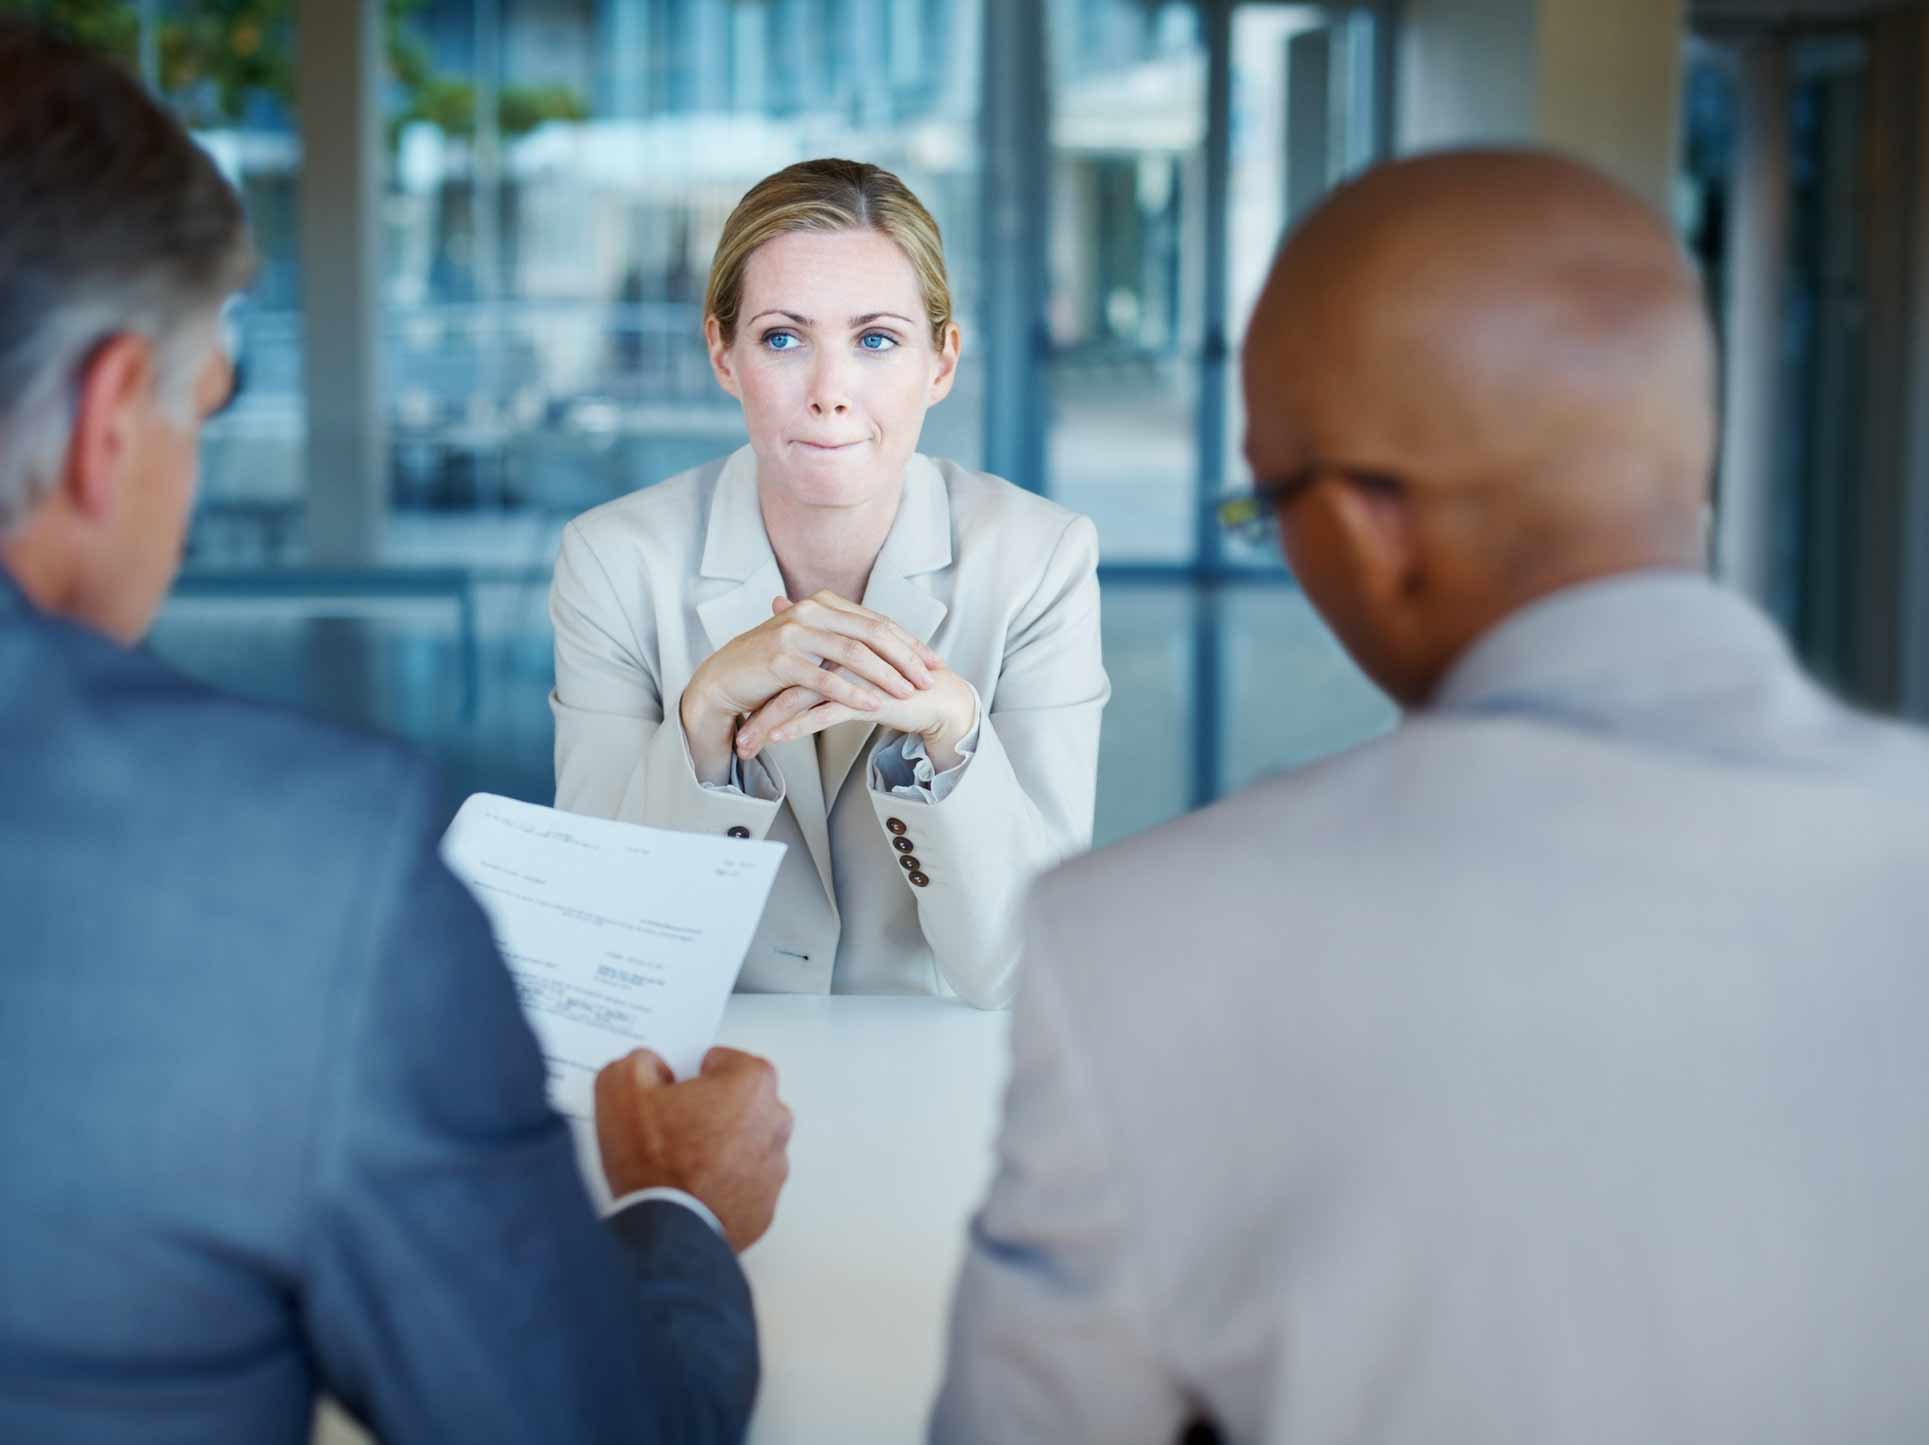 What to do when you and an interviewer just don't click